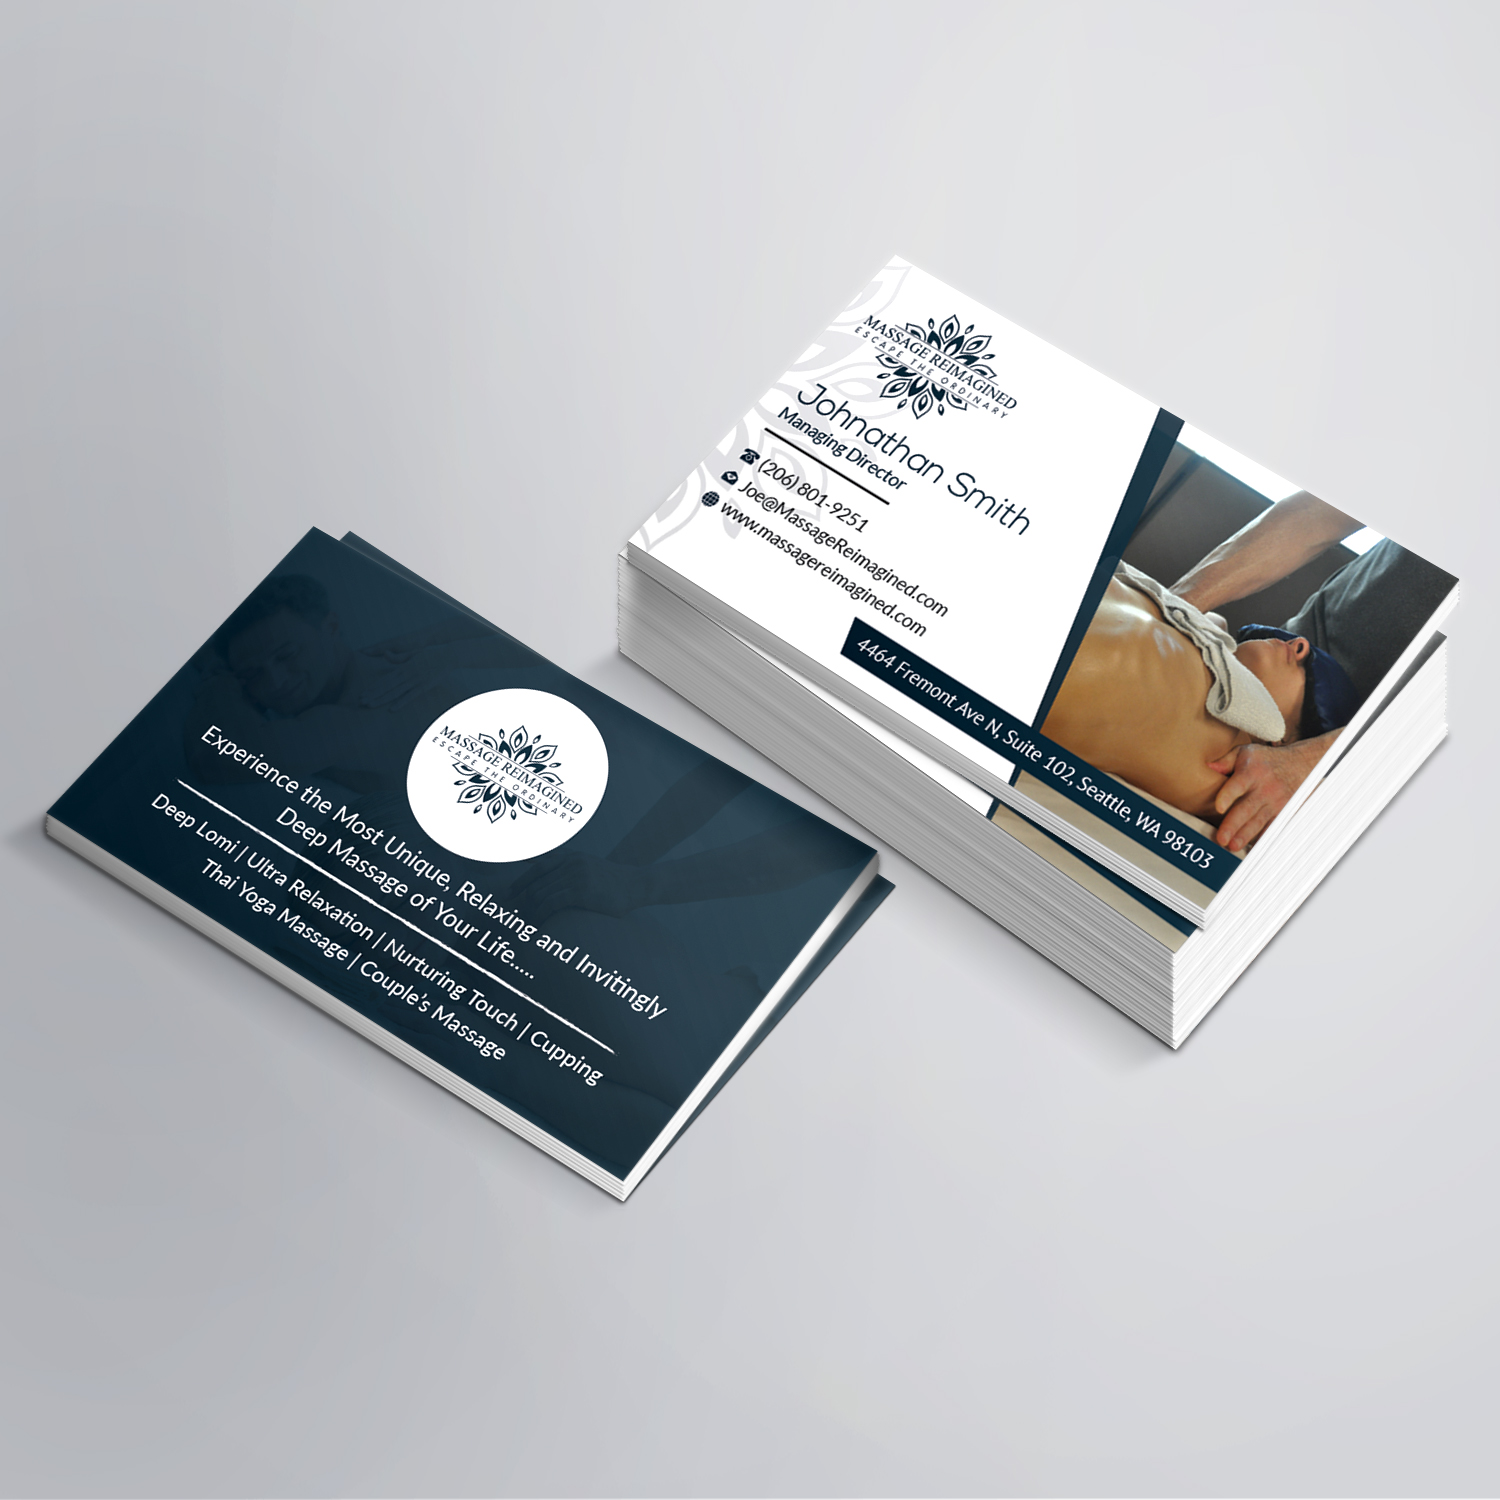 Elegant playful massage business card design for a company by business card design by sudipta sen for this project design 16315048 reheart Image collections